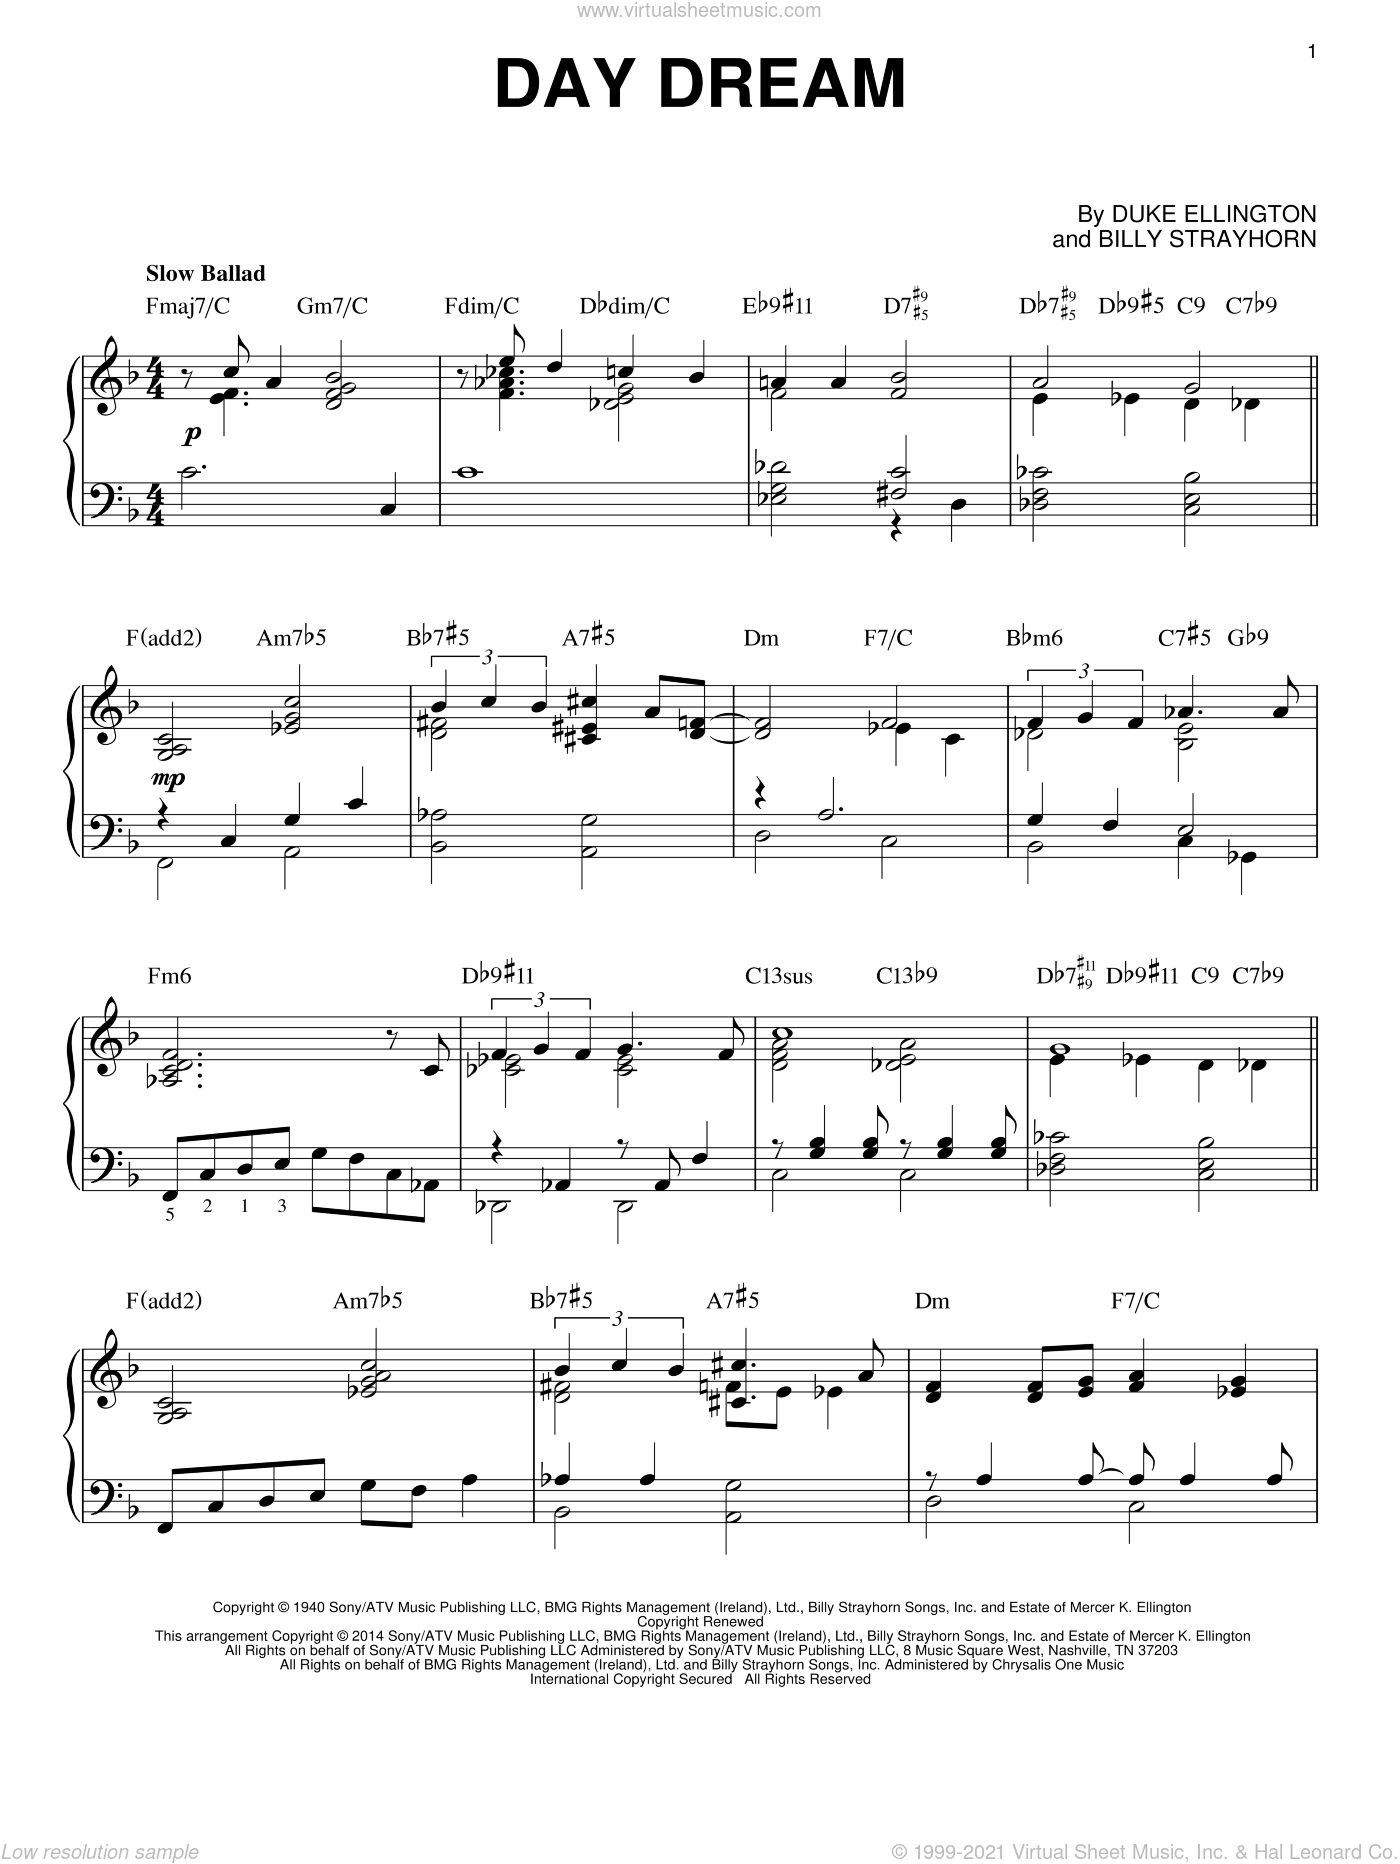 Day Dream sheet music for piano solo by Billy Strayhorn, intermediate piano. Score Image Preview.